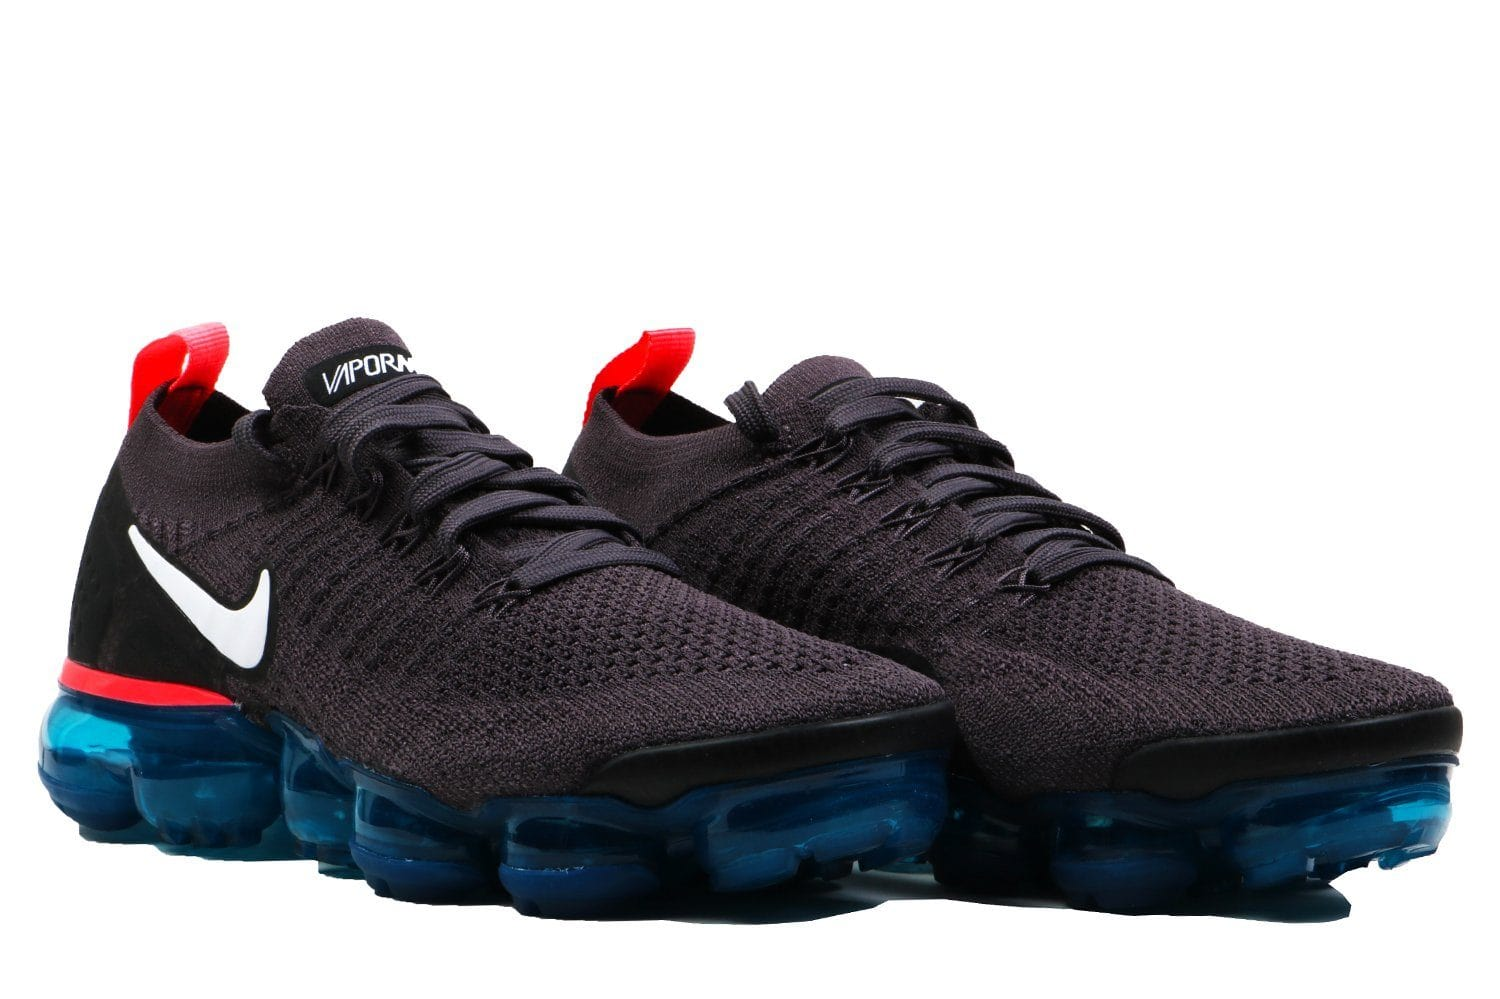 wholesale dealer 5f602 66a7d AIR VAPORMAX FLYKNIT 2-942843-009